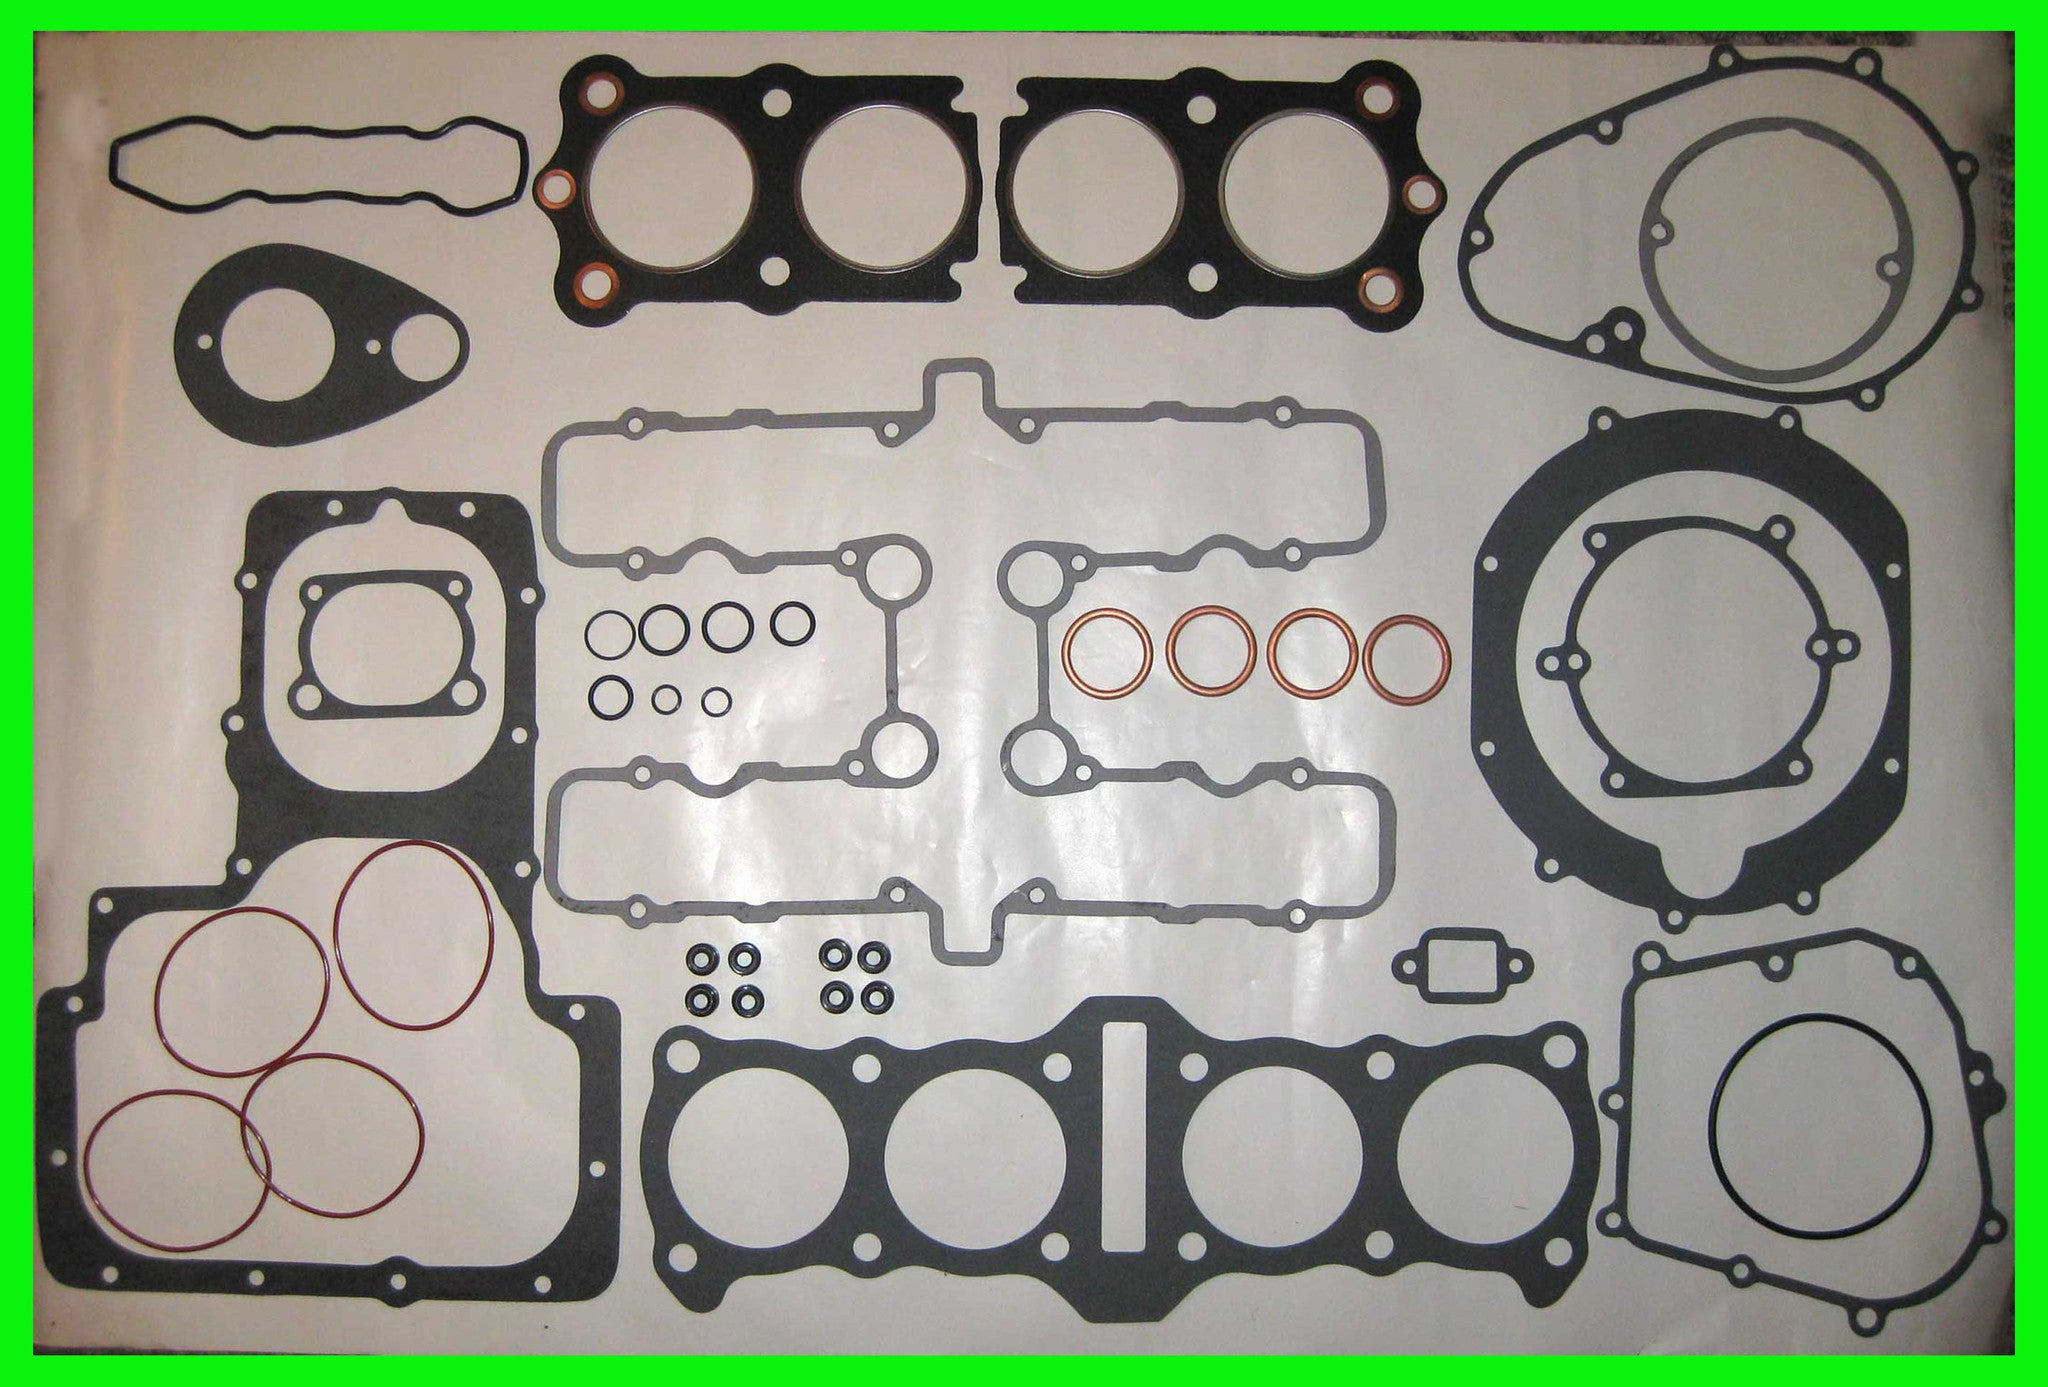 Kawasaki KZ1000 Engine Gasket Set 1977 1978 1000 Z1000- 39pcs!